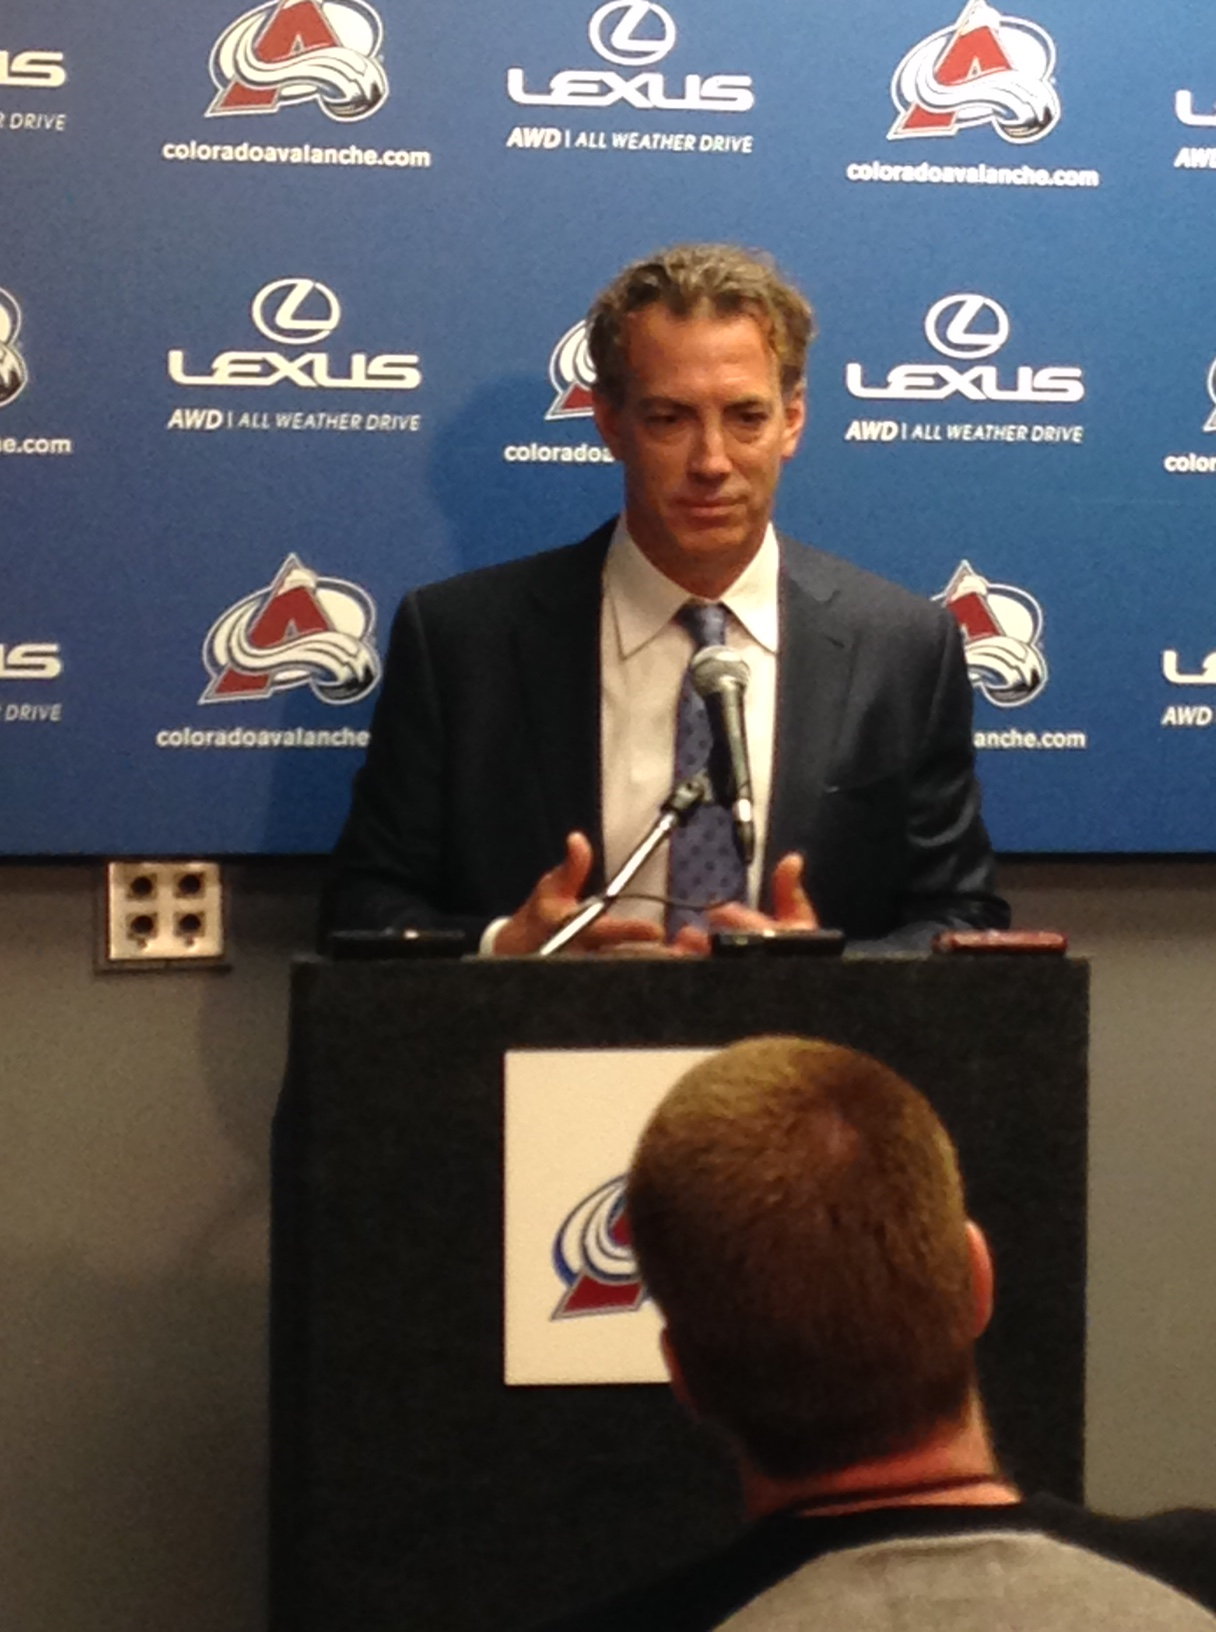 Joe Sakic making the announcement on Saturday (credit: CBS)